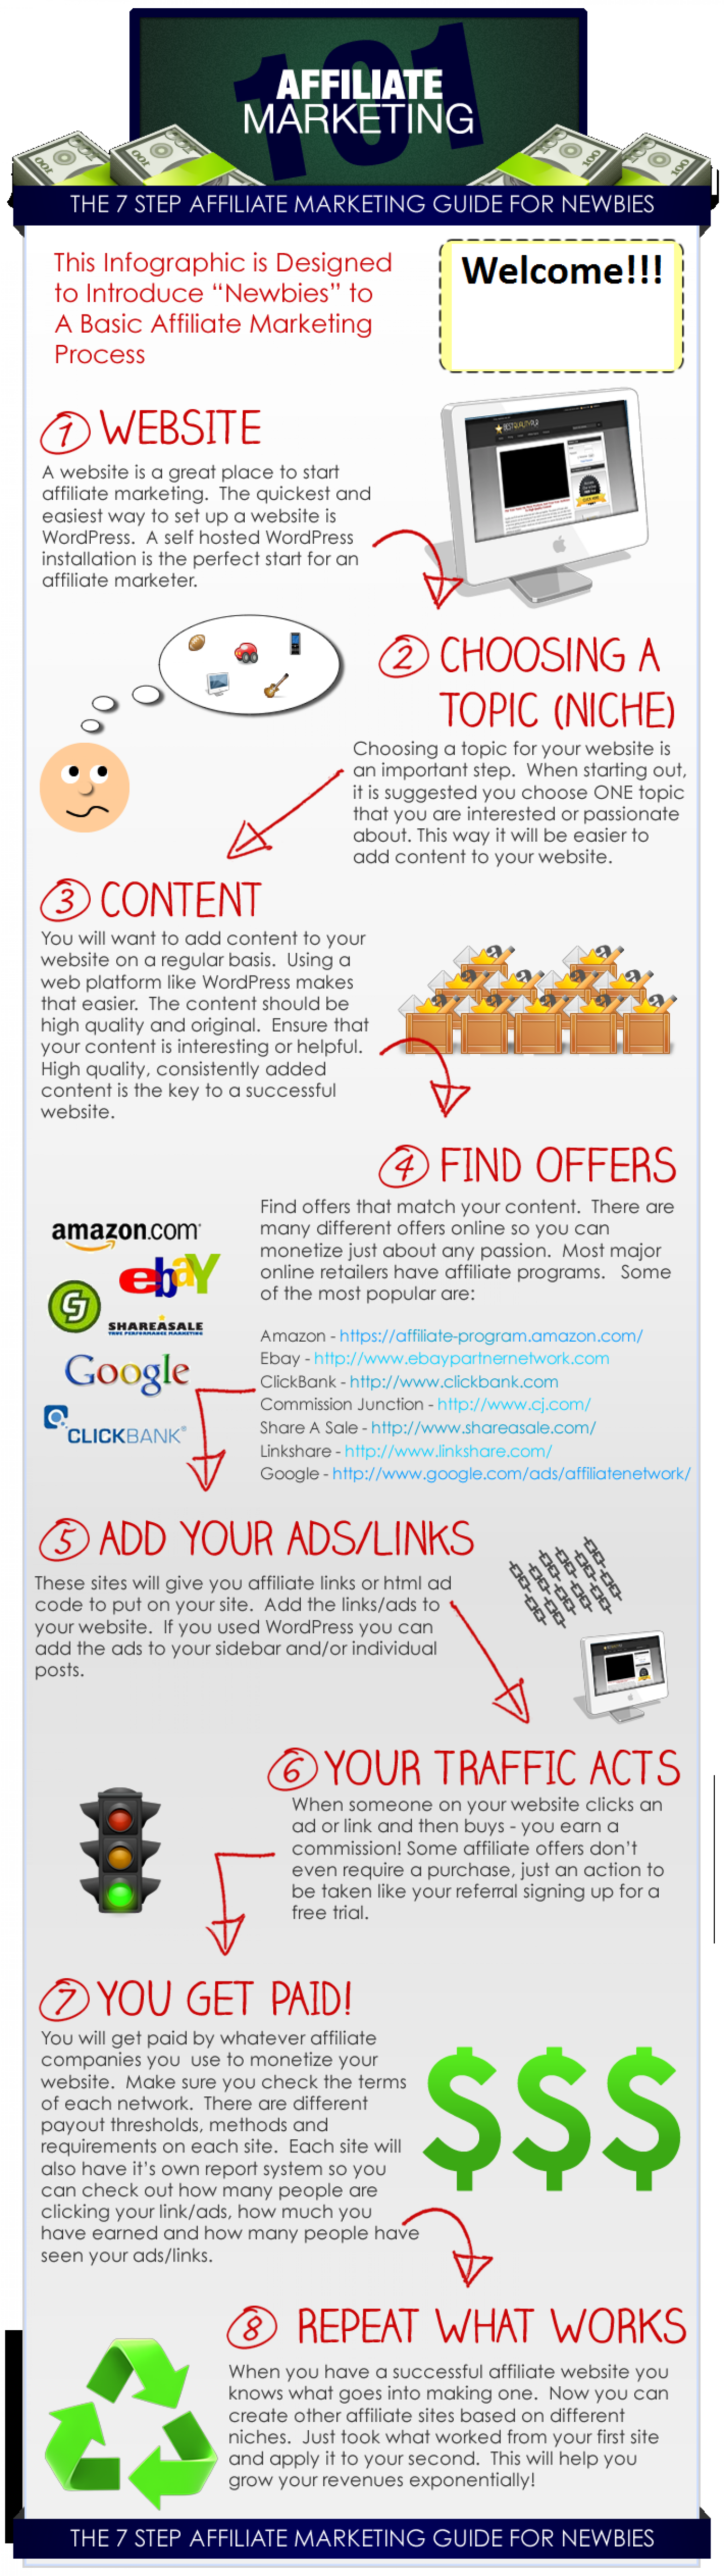 Affiliate Marketing Ideas Infographic